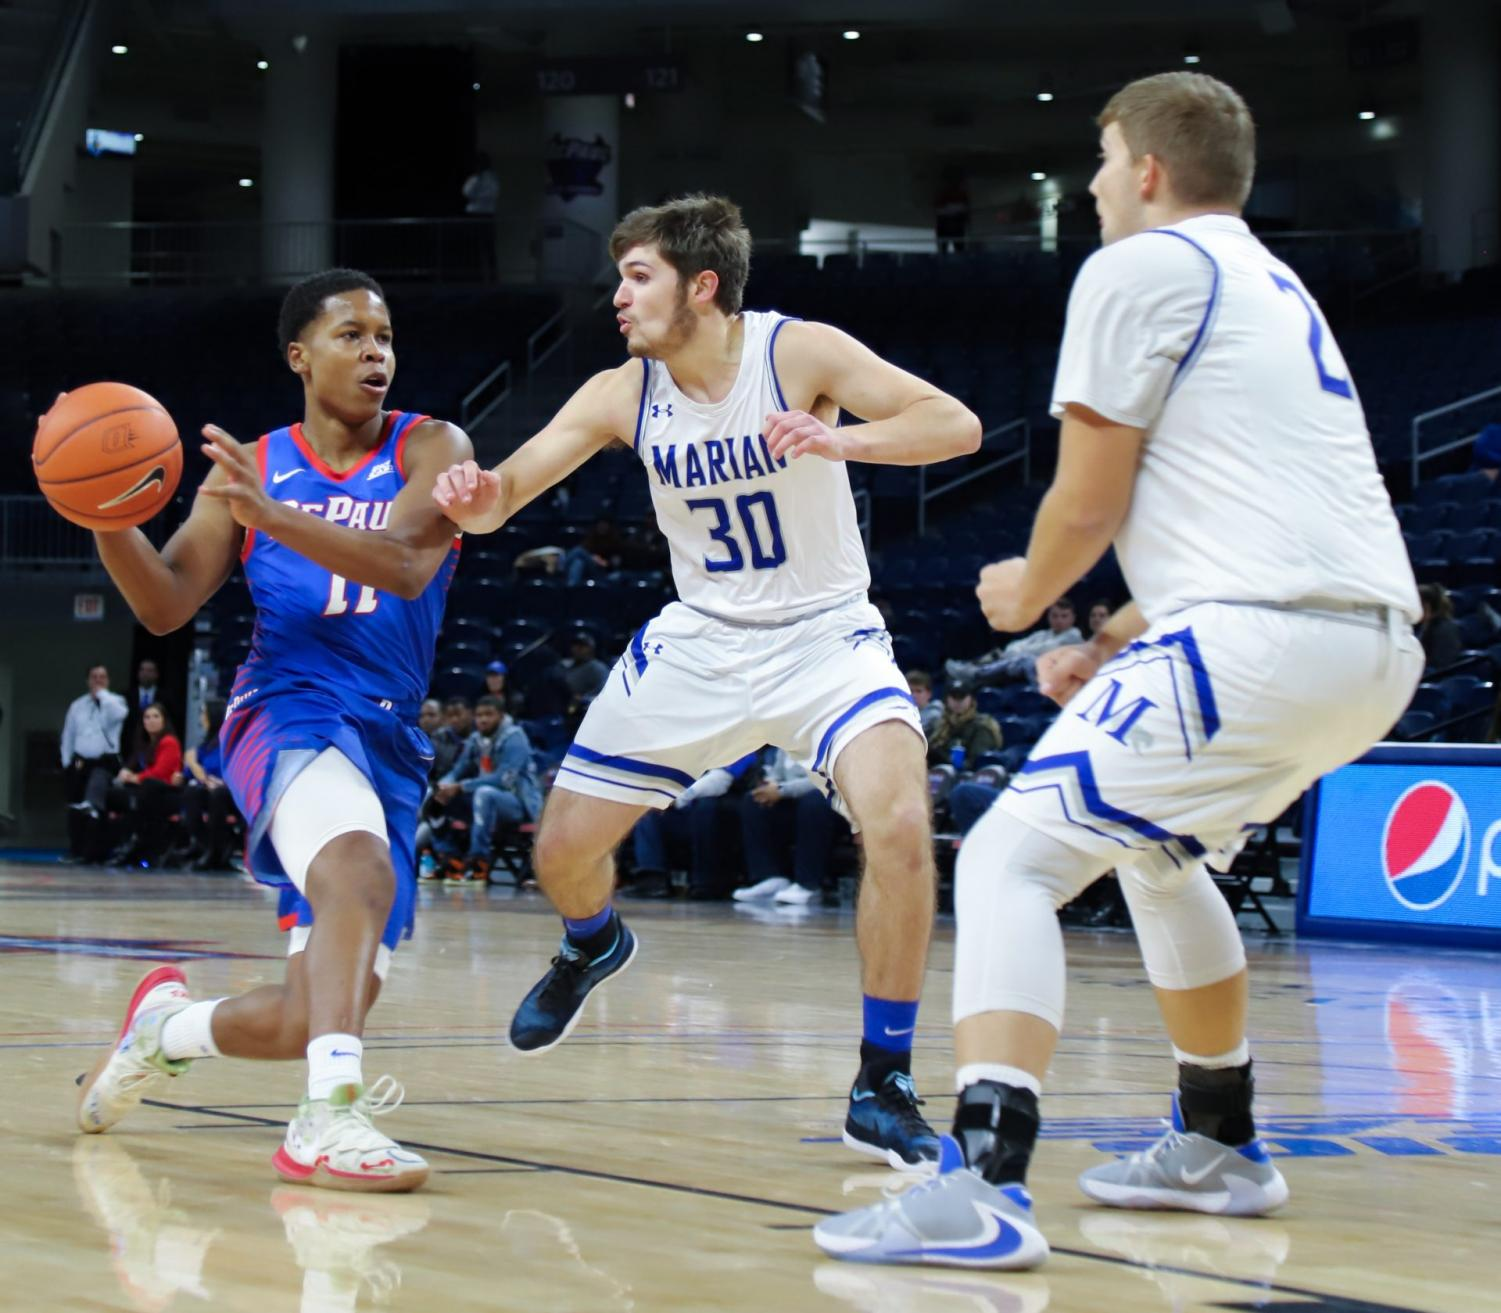 DePaul junior guard Charlie Moore goes for a bounce pass against Marian on Oct. 29 at Wintrust Arena.